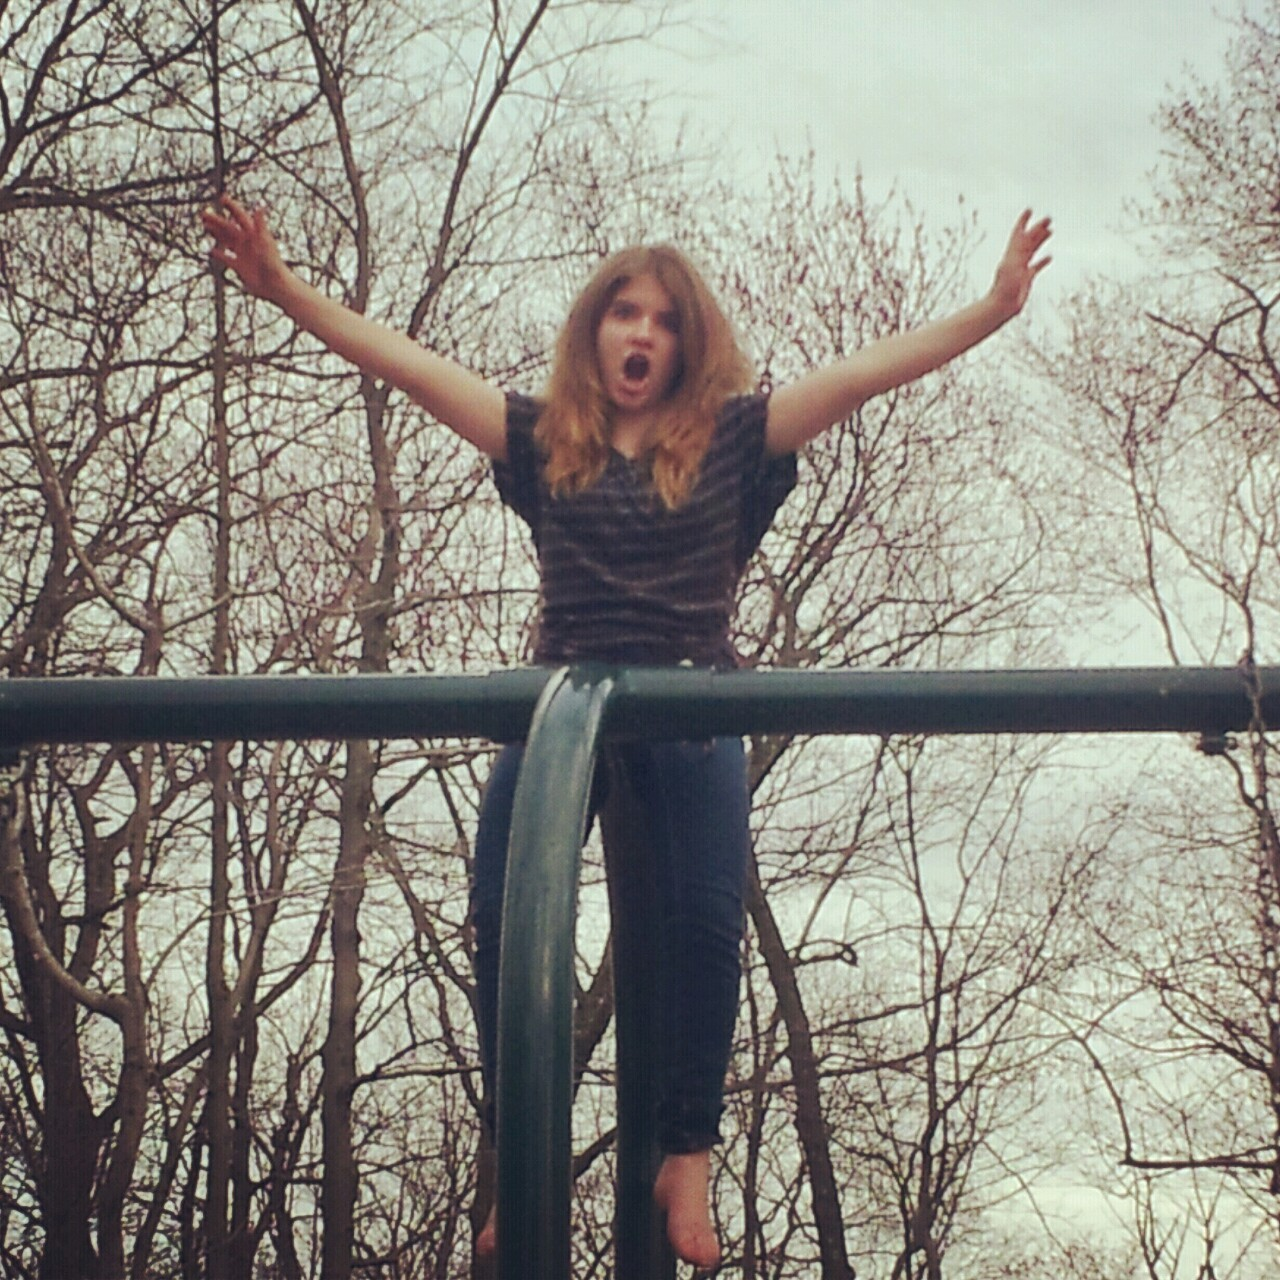 bri would go on top of the swings! my bestie frendie!! i wuv y!!